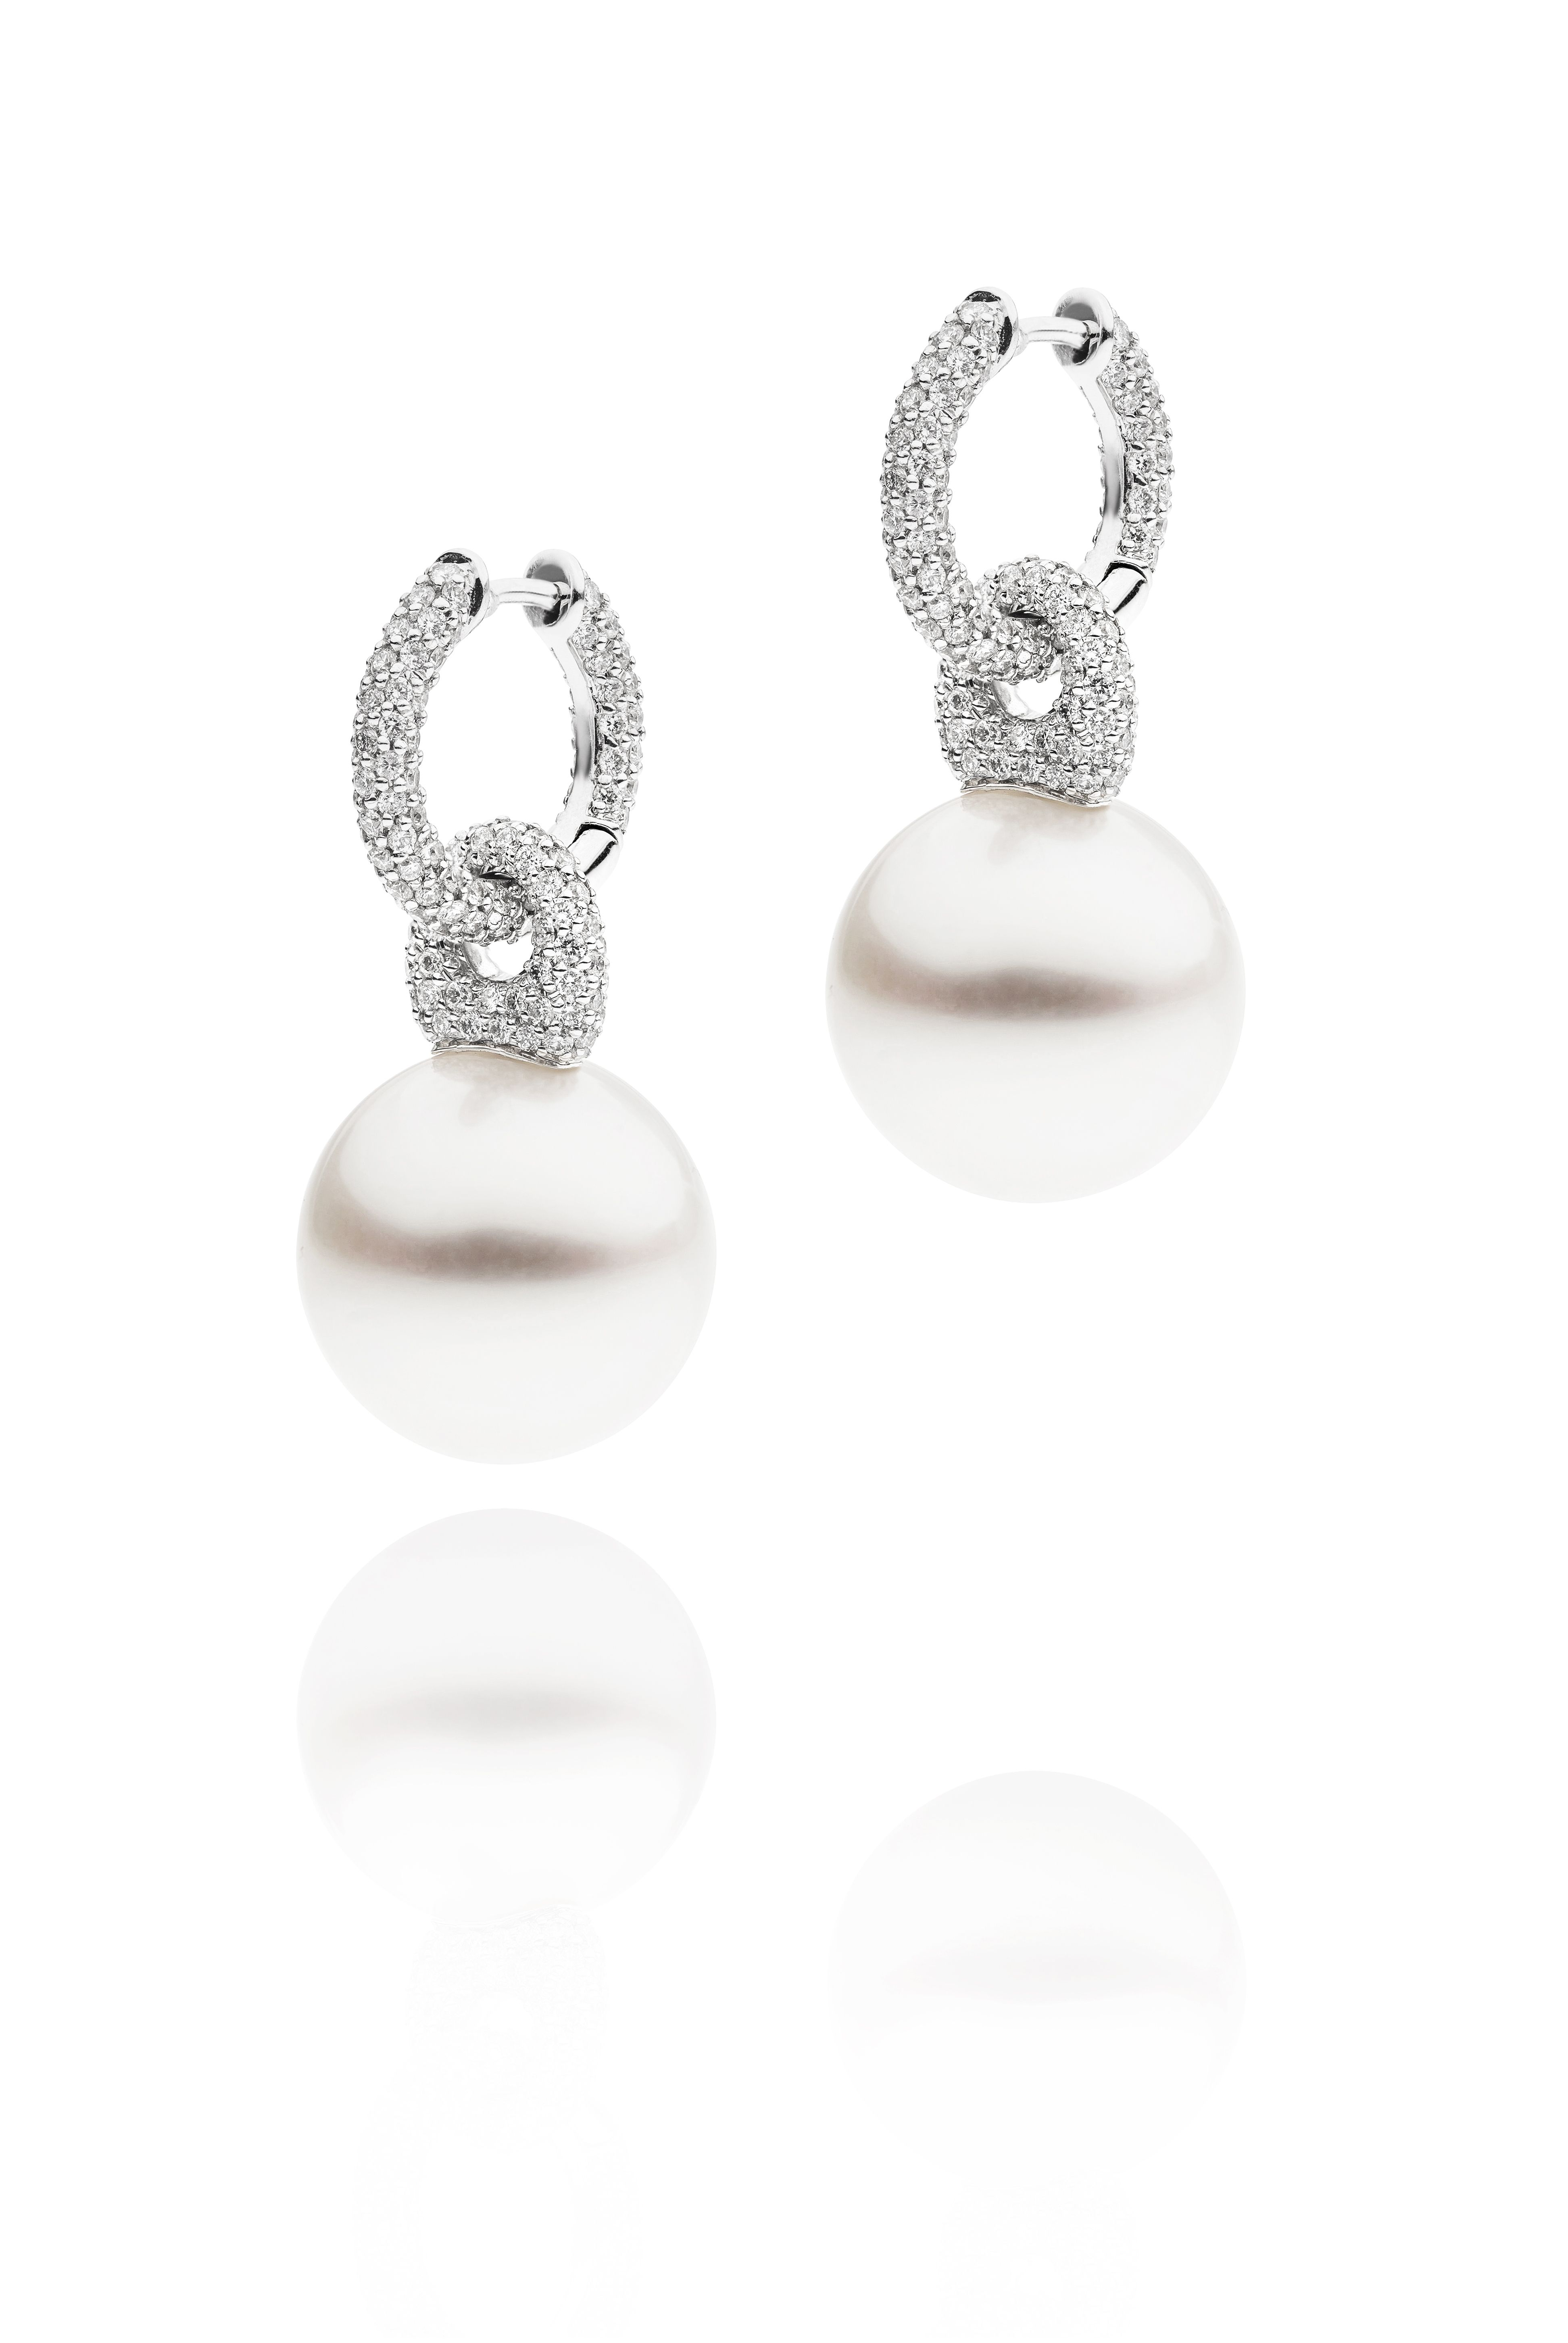 AUTORE Link Earrings  18k White Gold with White Diamonds and South Sea pearls  JE14090053